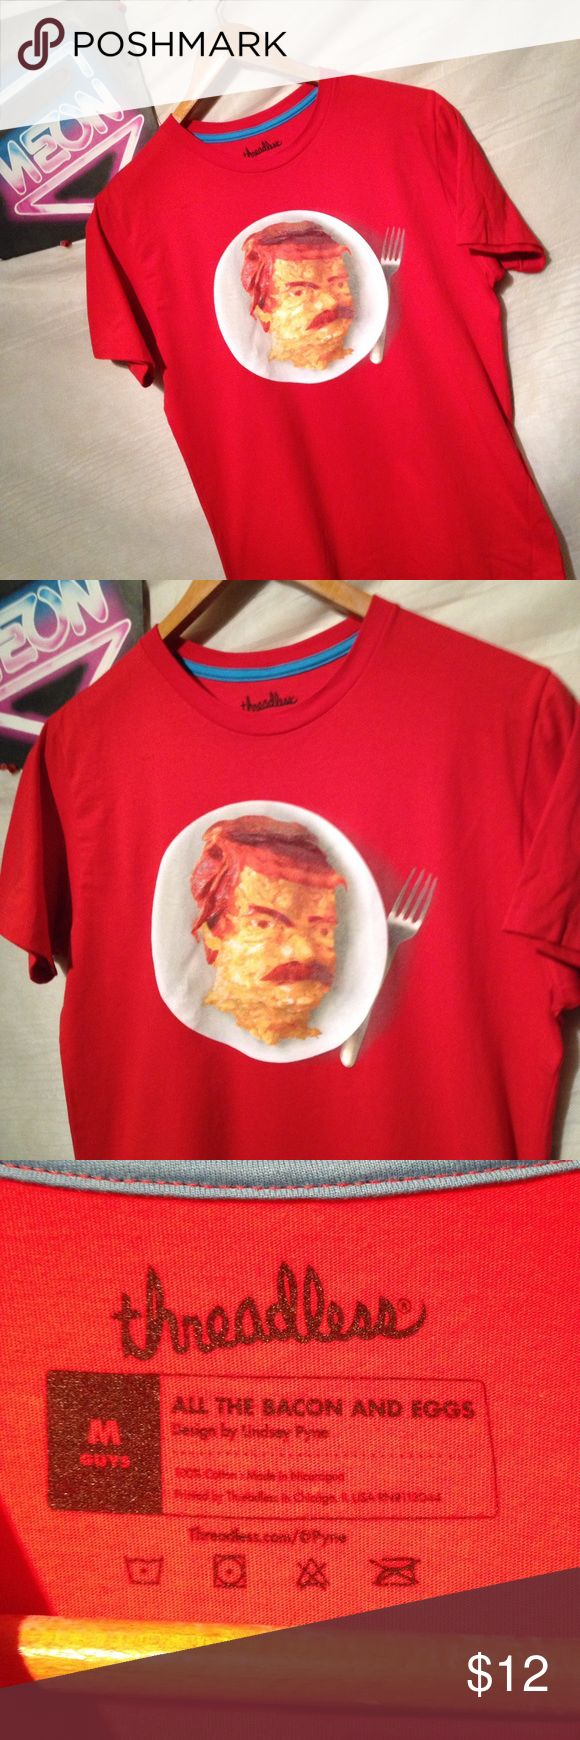 Thread less parks and rec eggs bacon shirt size M Used shirt with some signs of wear from use which could include discoloration from washing or small imperfections. Otherwise no holes, rips or tears shipping from smoke free environment, thank you. threadless Shirts Tees - Short Sleeve